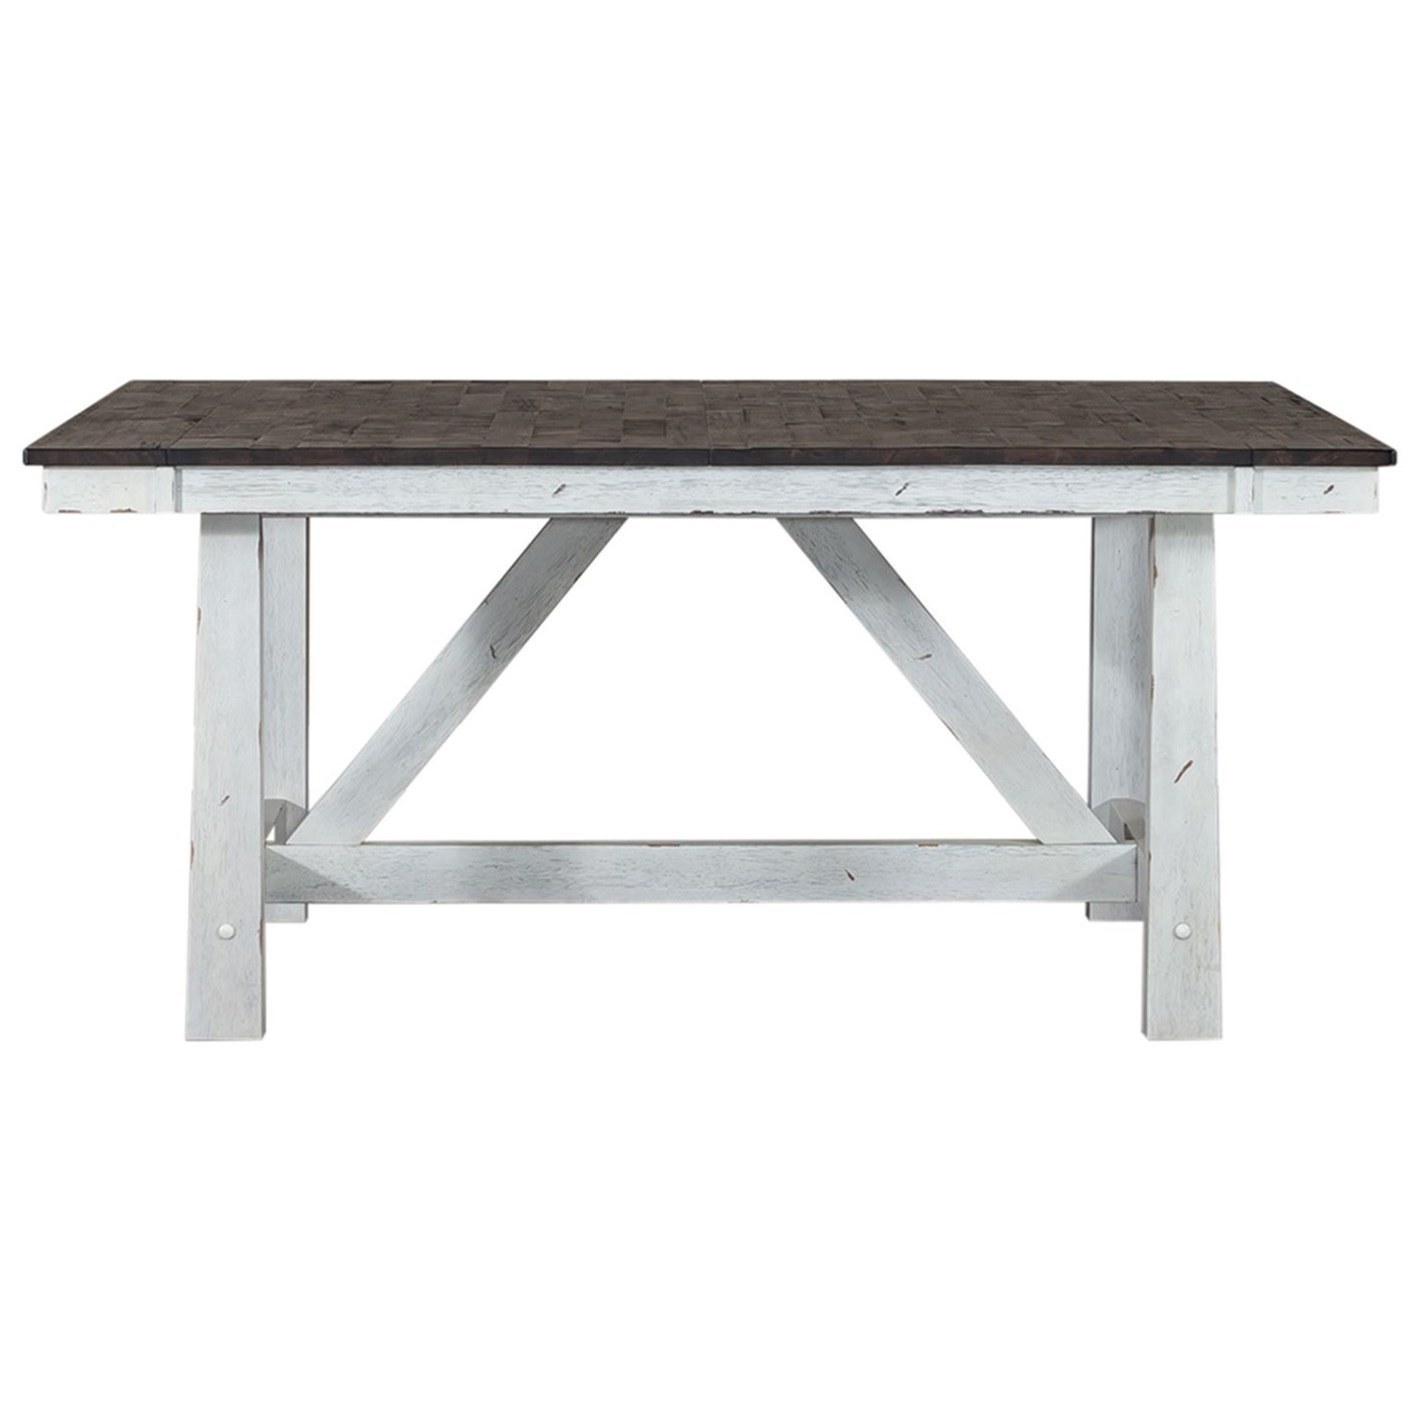 Farmhouse Trestle Table by Libby at Walker's Furniture